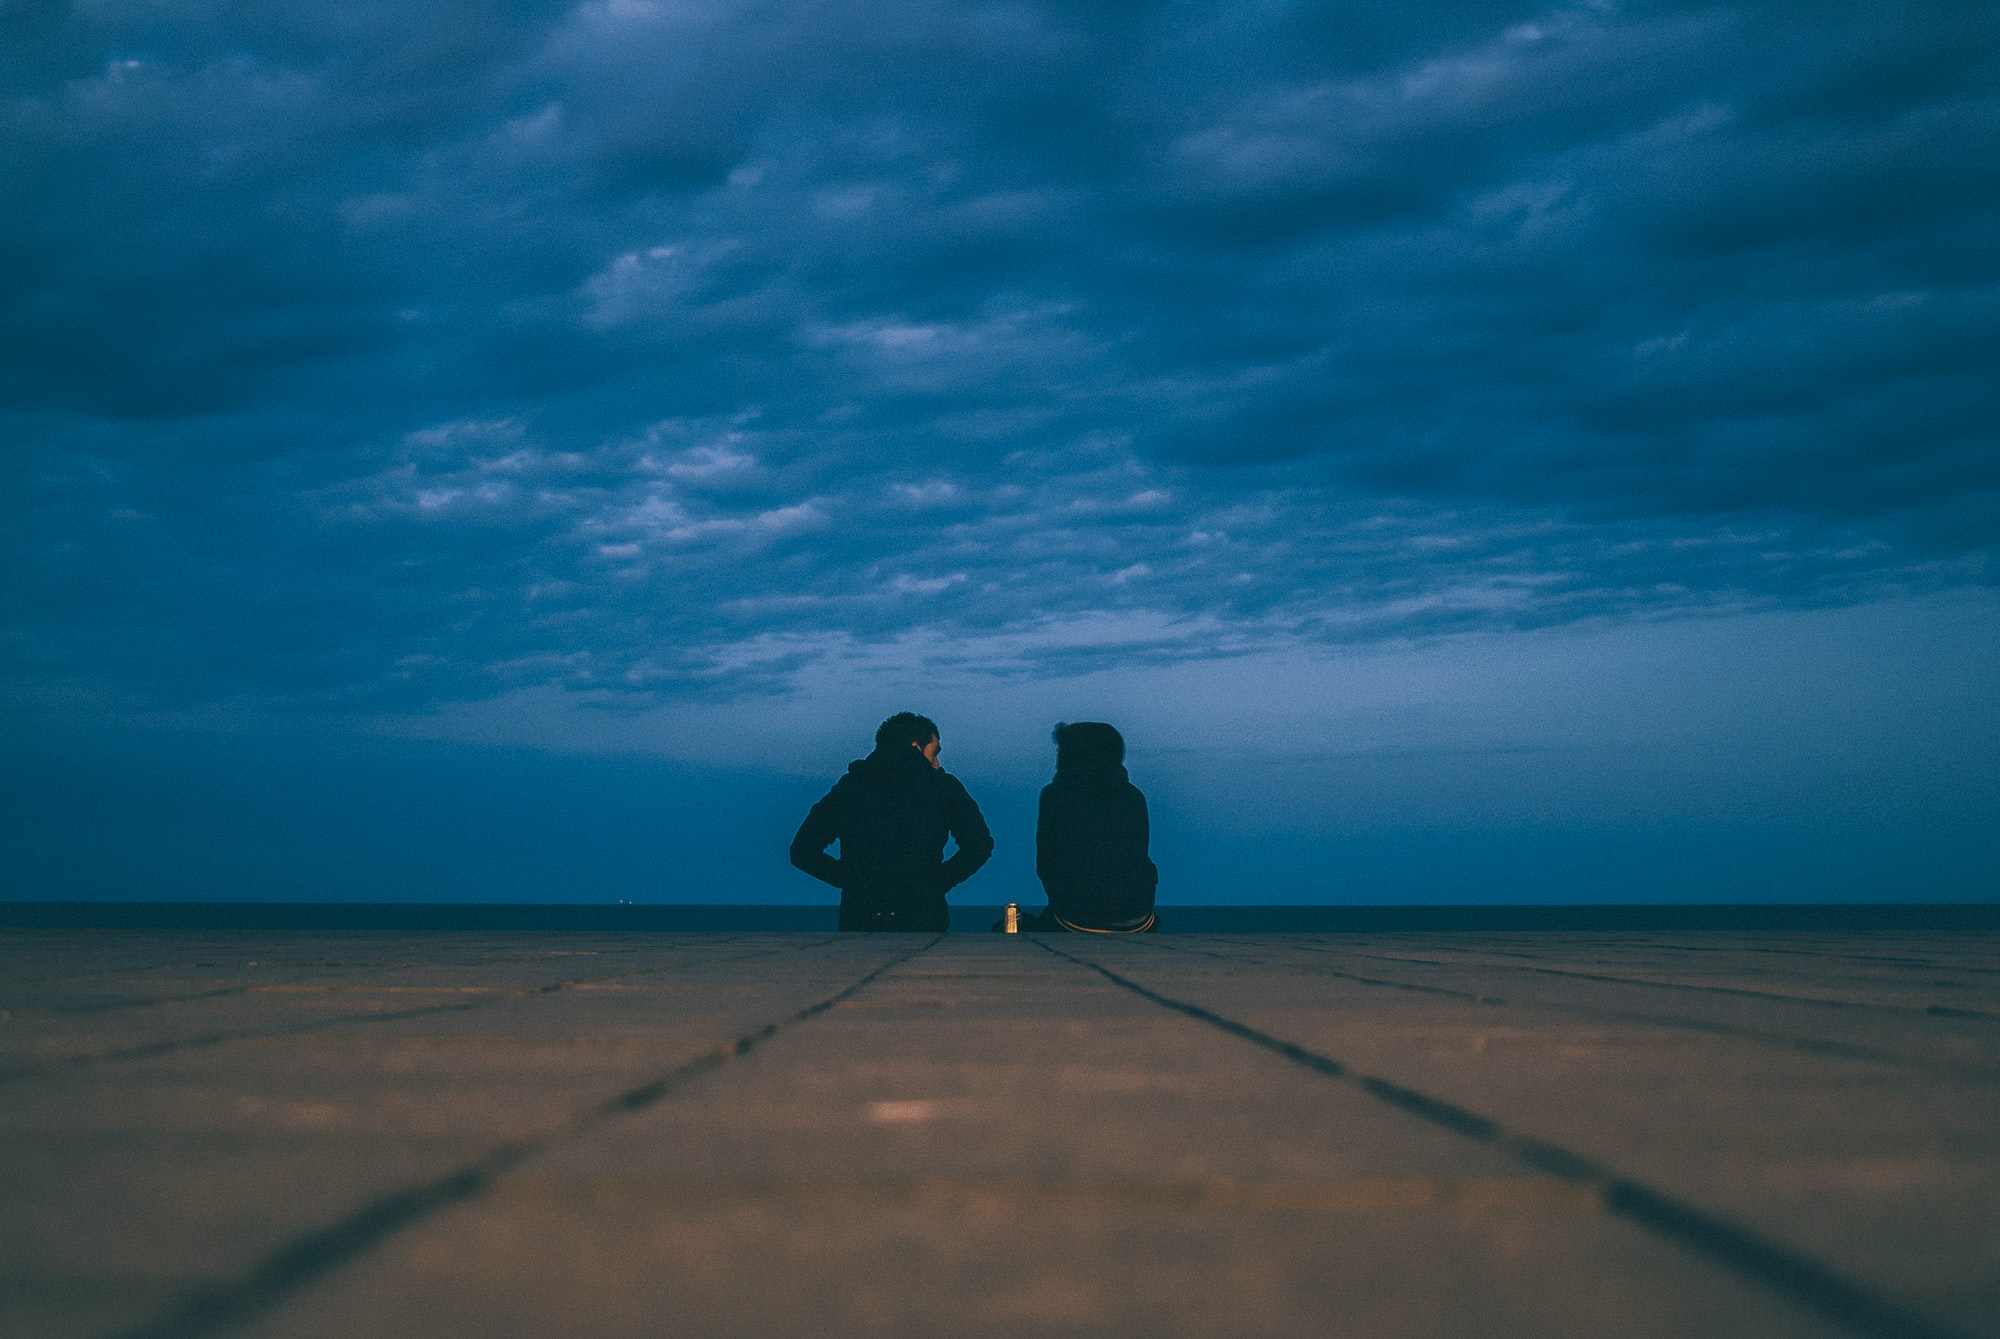 Low angle shot of two people sitting next to each other on a cloudy evening on a wooden floor.